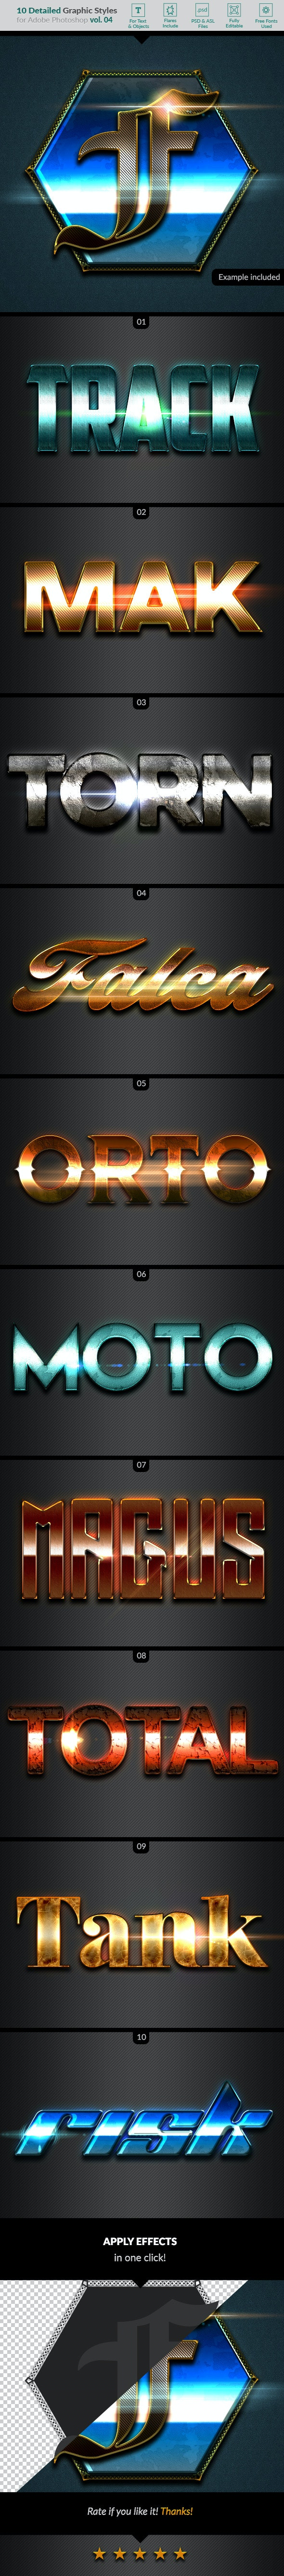 10 Text Effects Vol. 04 - Text Effects Styles